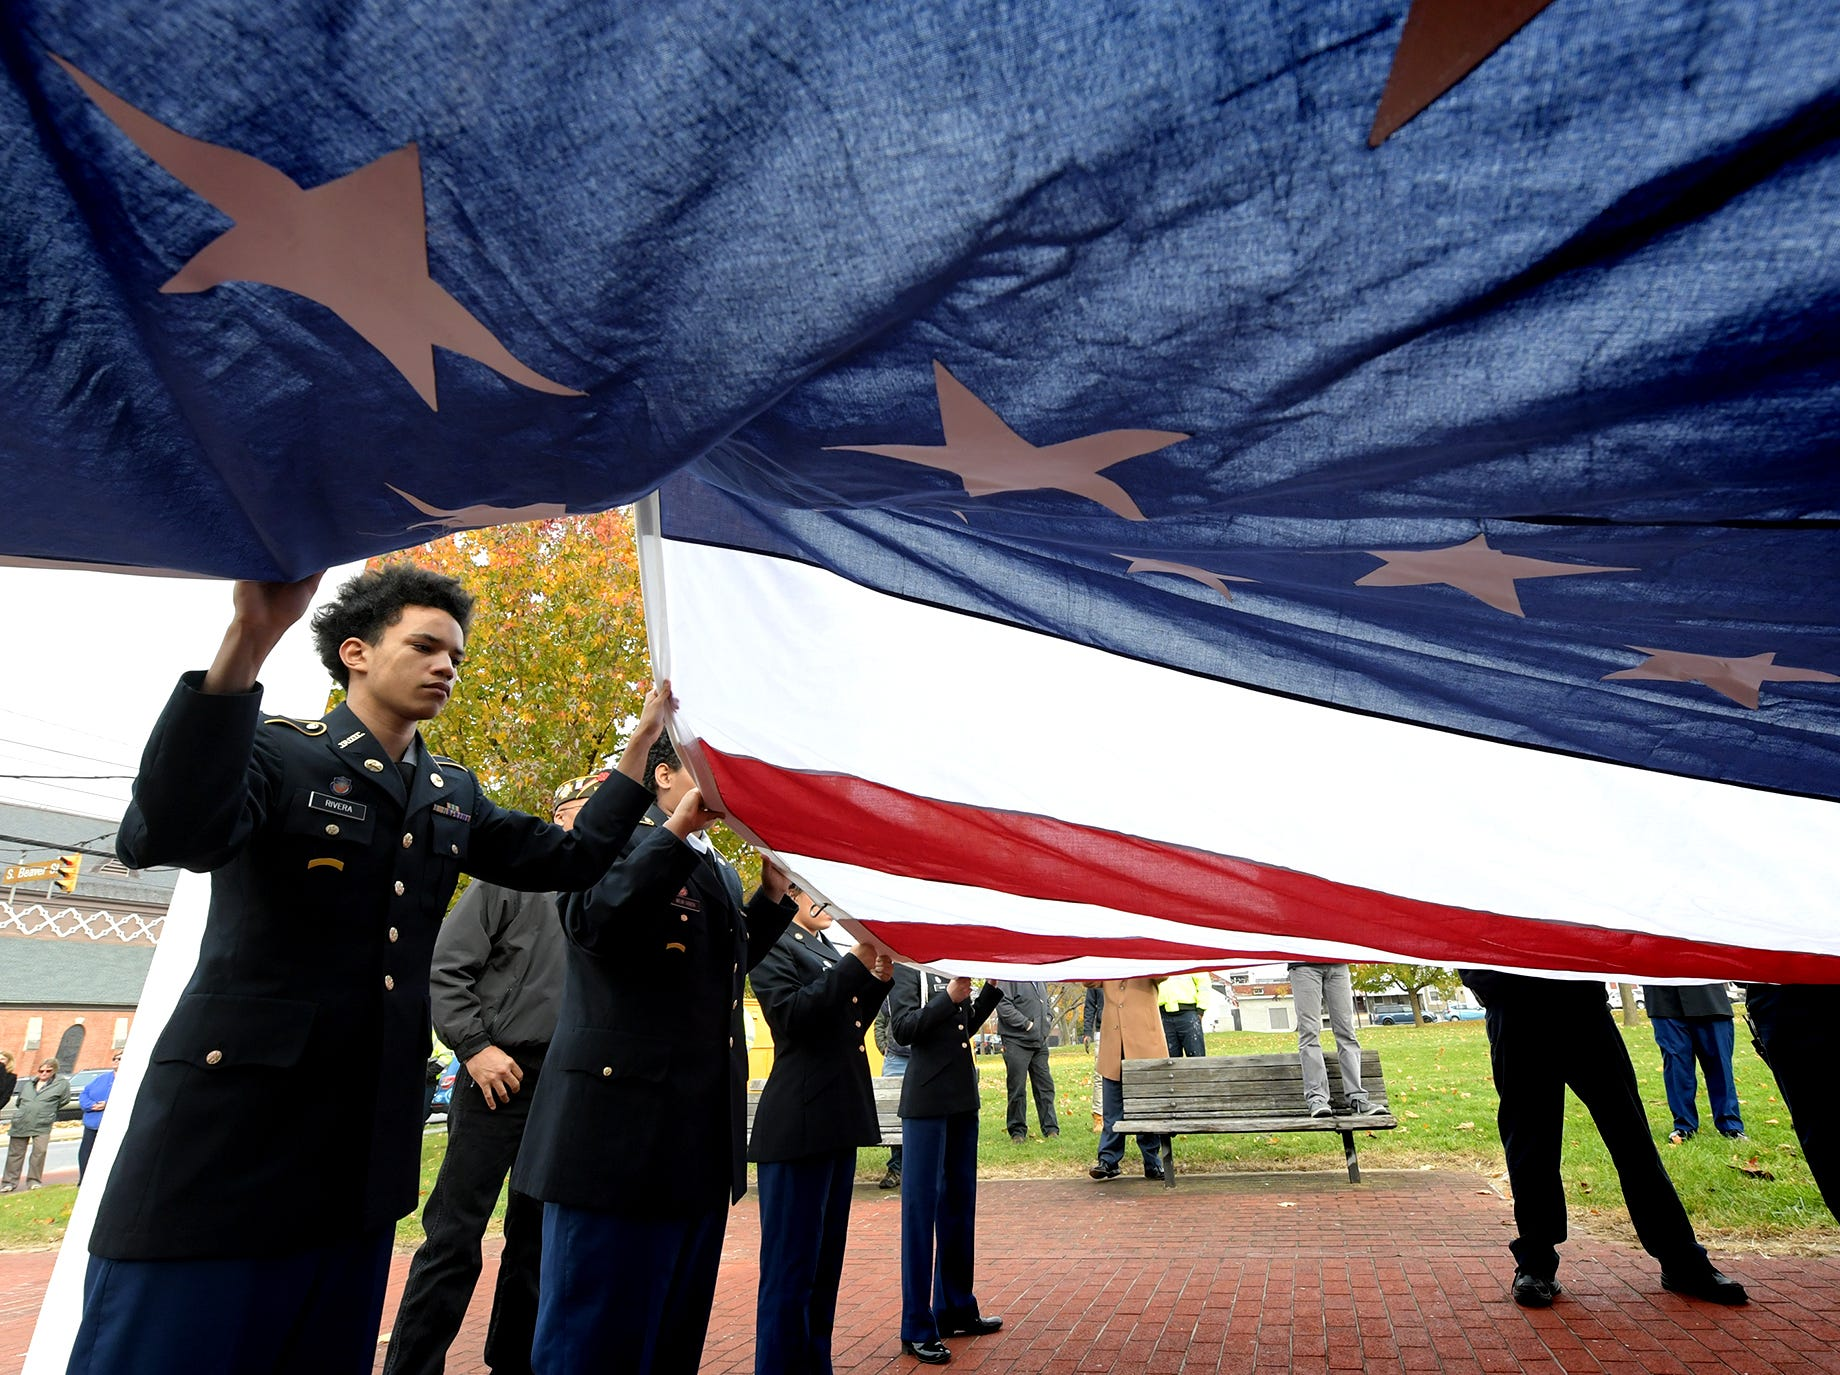 York High School Junior ROTC member Sheldrek Rivera drapes the the Penn Park flag with other members during a flag raising ceremony at the park Monday, Nov. 12, 2018. State Representative Carol Hill-Evans' office secured the purchase of the 20'x30' American flag and the City of York provided upgrades to the flagpole and lighting. The York County Department of Veterans Affairs will be in charge of flag replacement as needed. The flagpole at Penn Park has been vacant since 2012. Bill Kalina photo